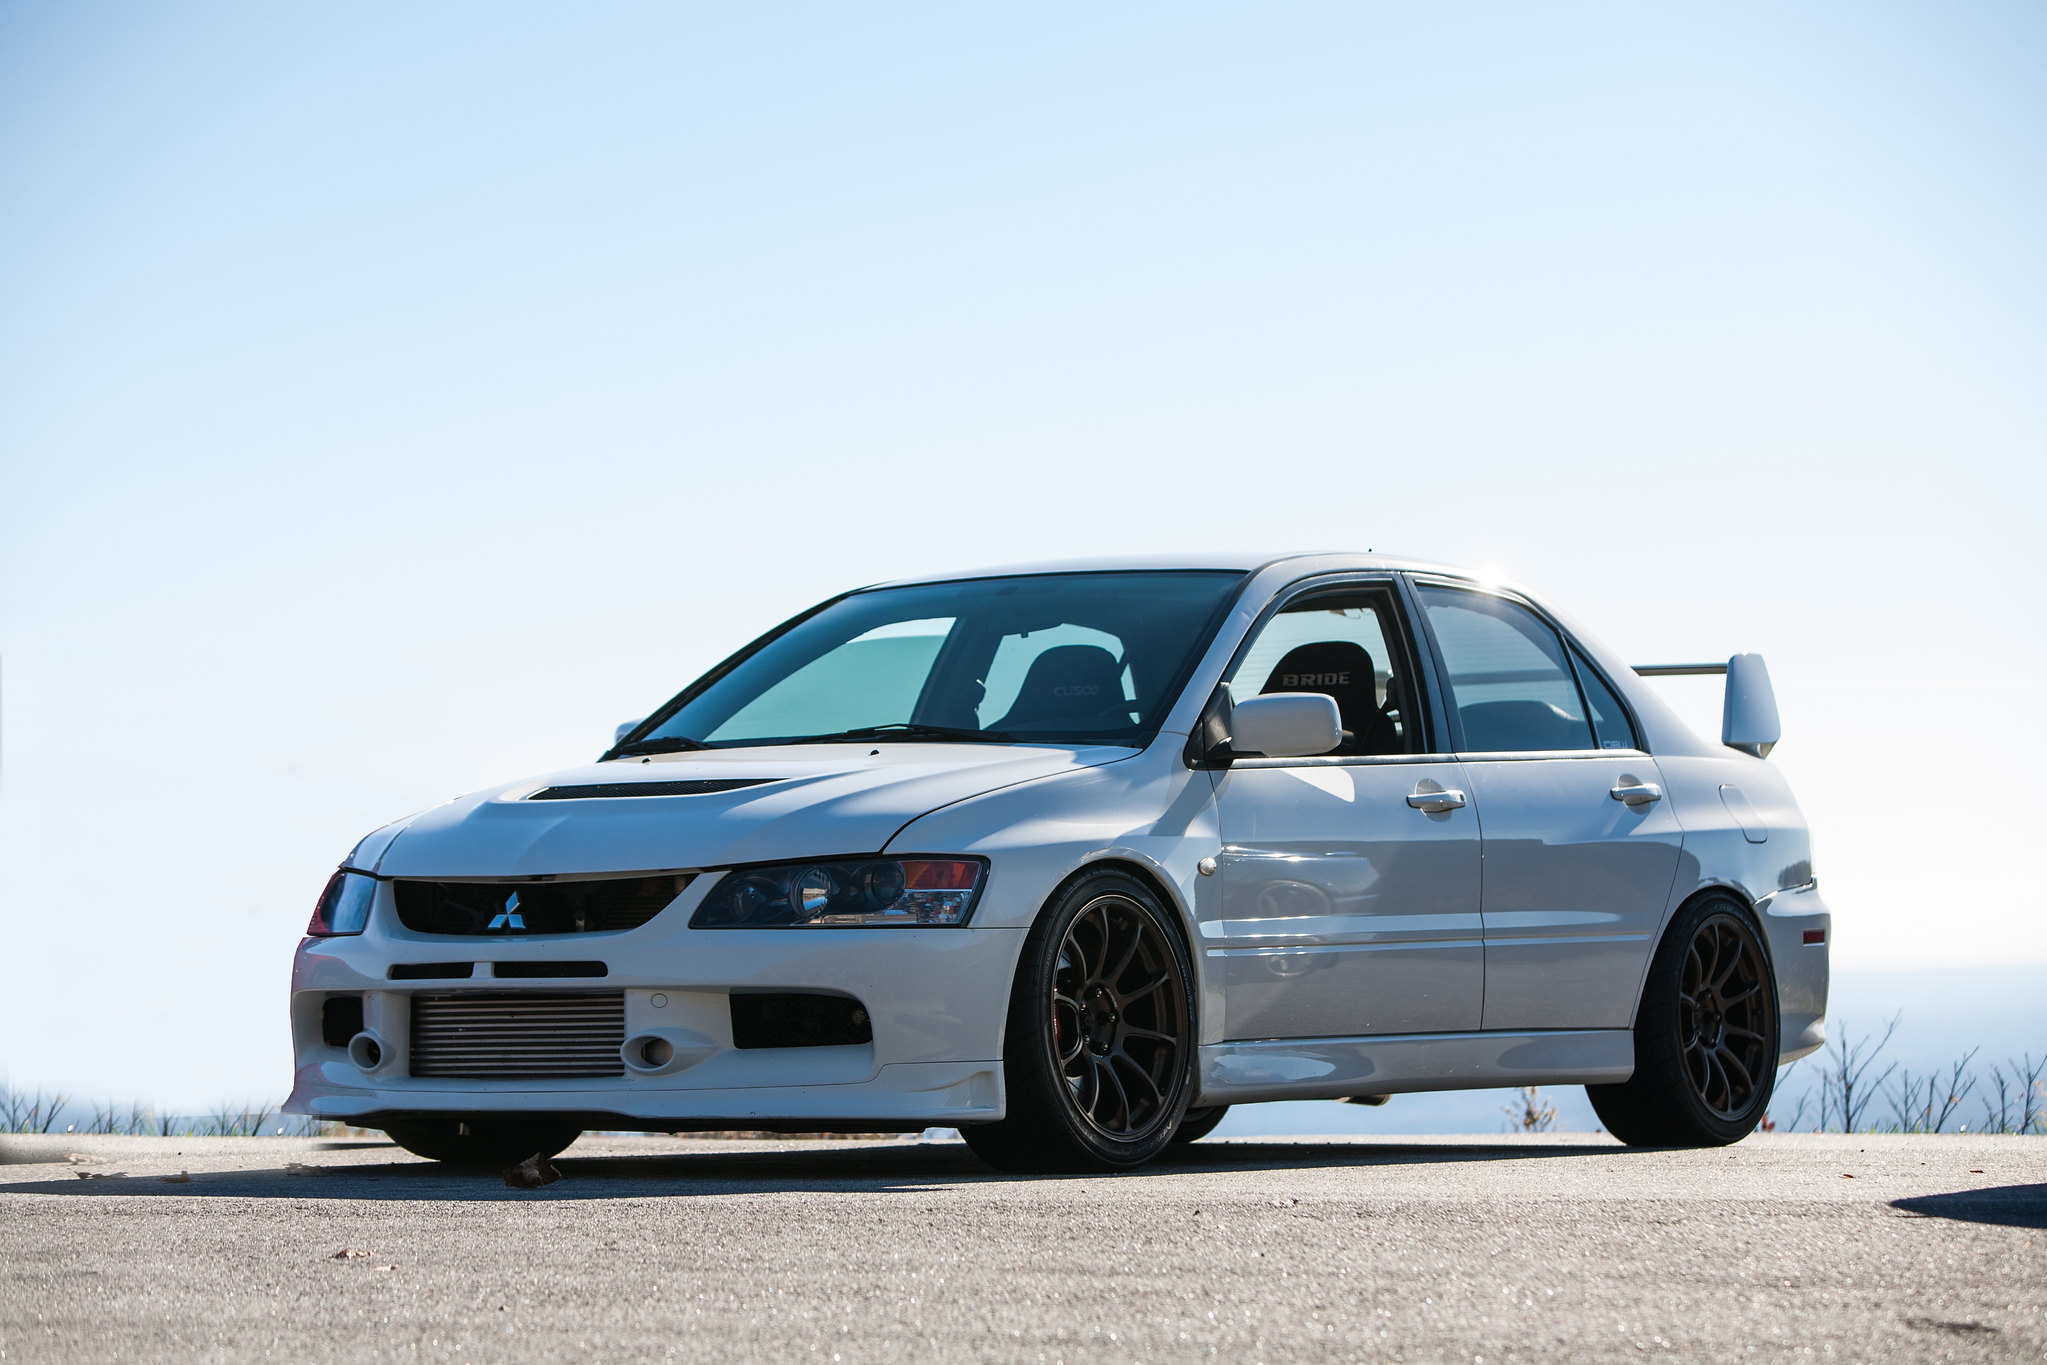 Mitsubishi Evo 11 Specs >> A Few Pictures of my White IX MR - EvolutionM - Mitsubishi Lancer and Lancer Evolution Community